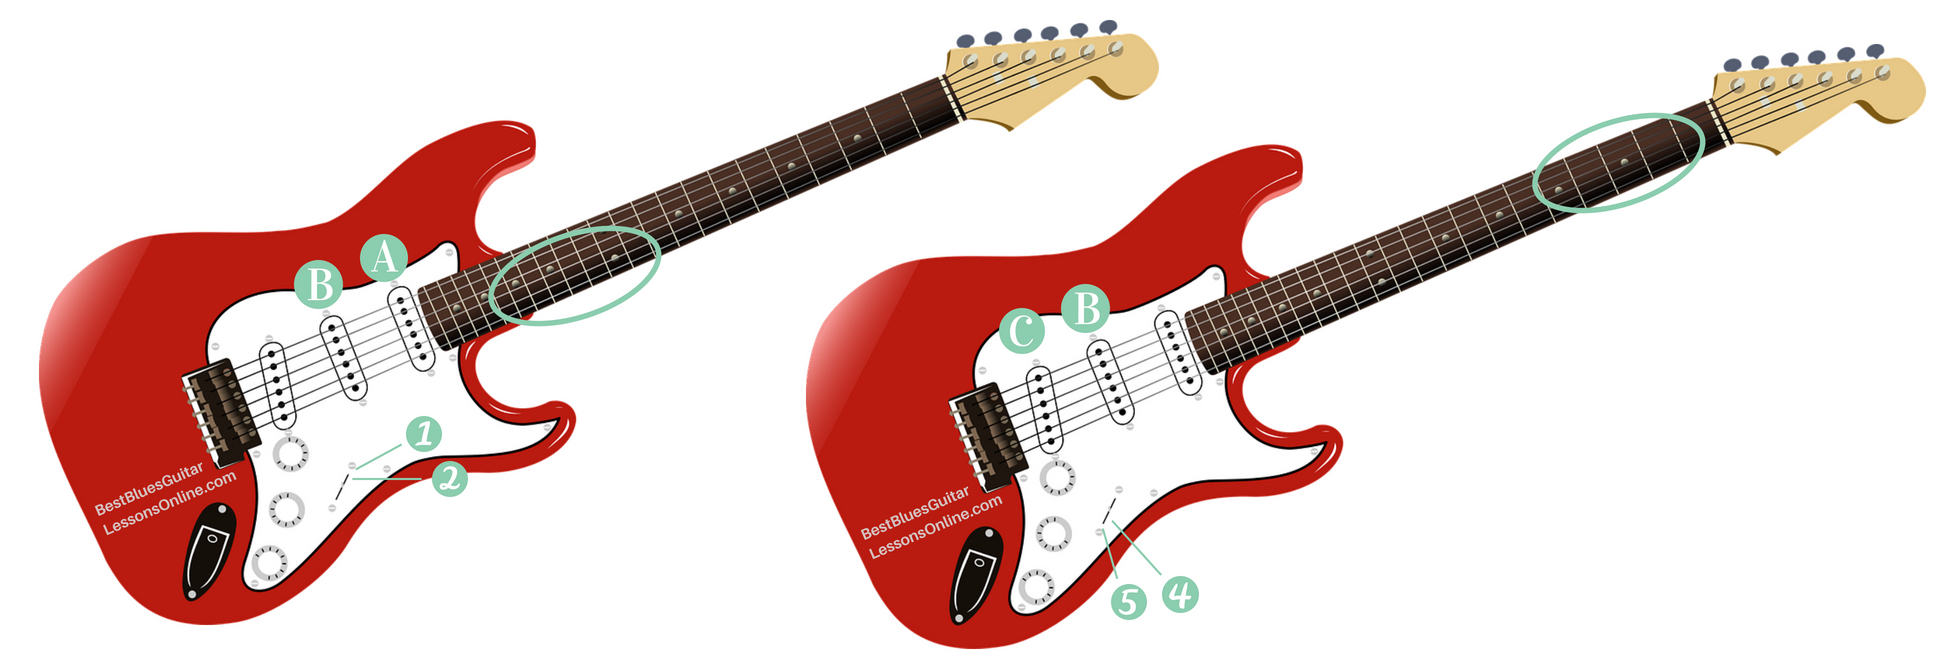 Guitar Knobs And Toggle Switch Explained  How To Master Your Guitar Sound